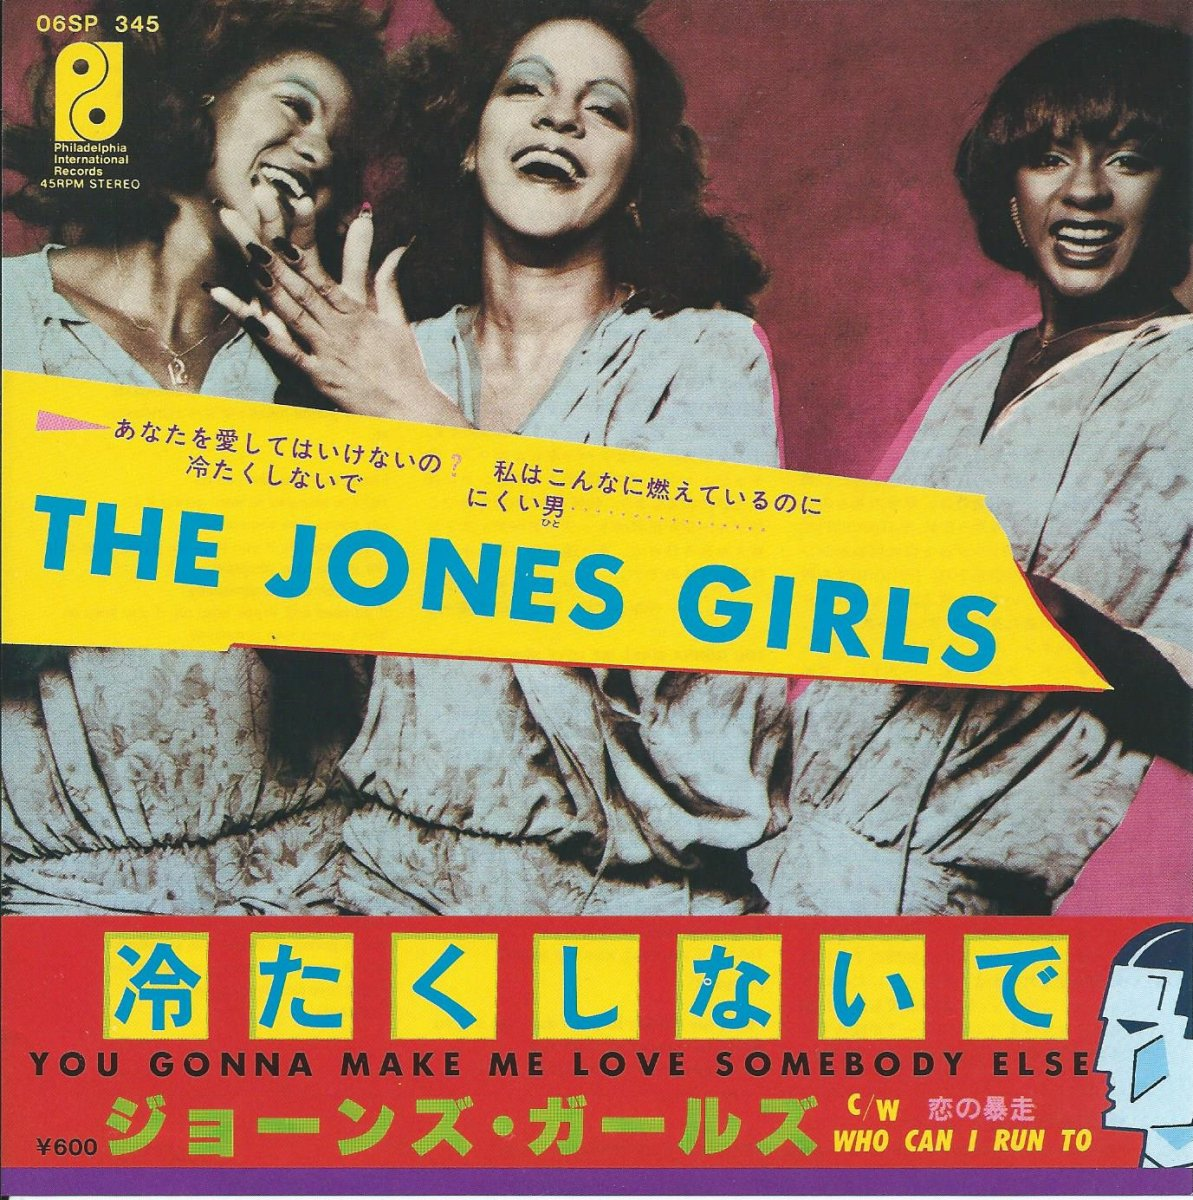 ジョーンズ・ガールズ THE JONES GIRLS / 冷たくしないで YOU GONNA MAKE ME LOVE SOMEBODY ELSE (7